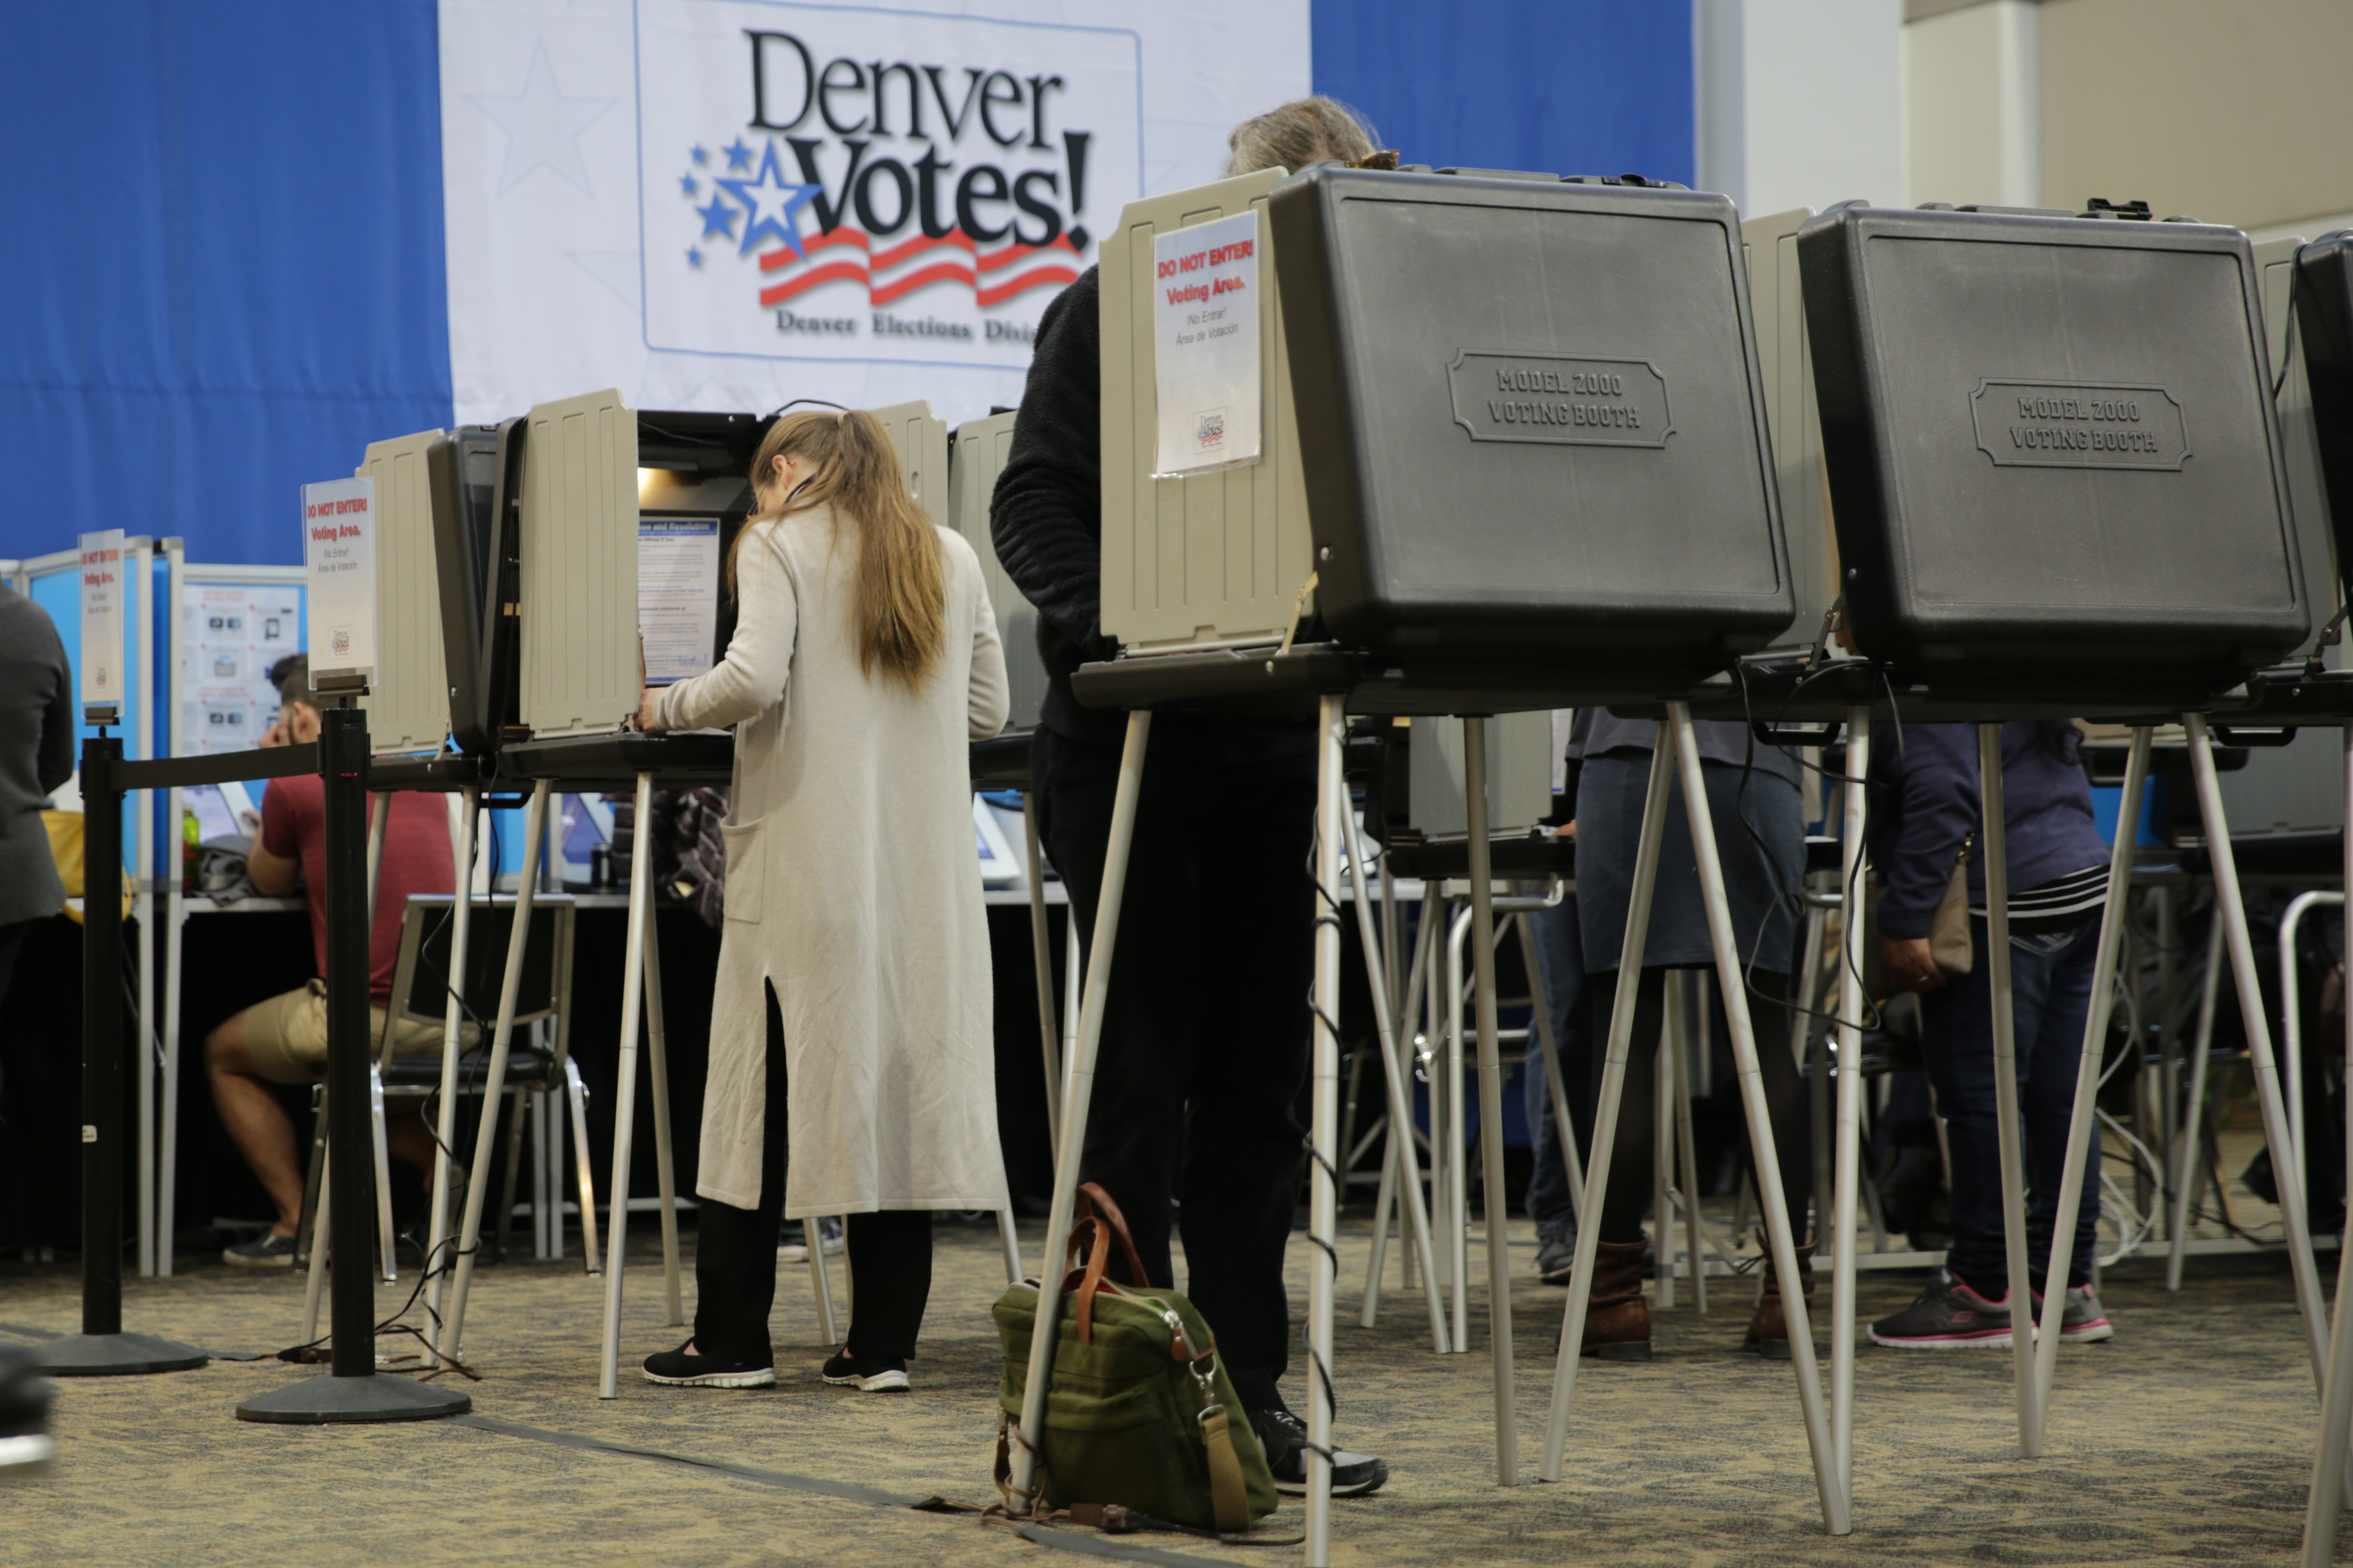 <p>Voters casting their ballots at the Denver Elections Division headquarters on Election Day 2016.</p>